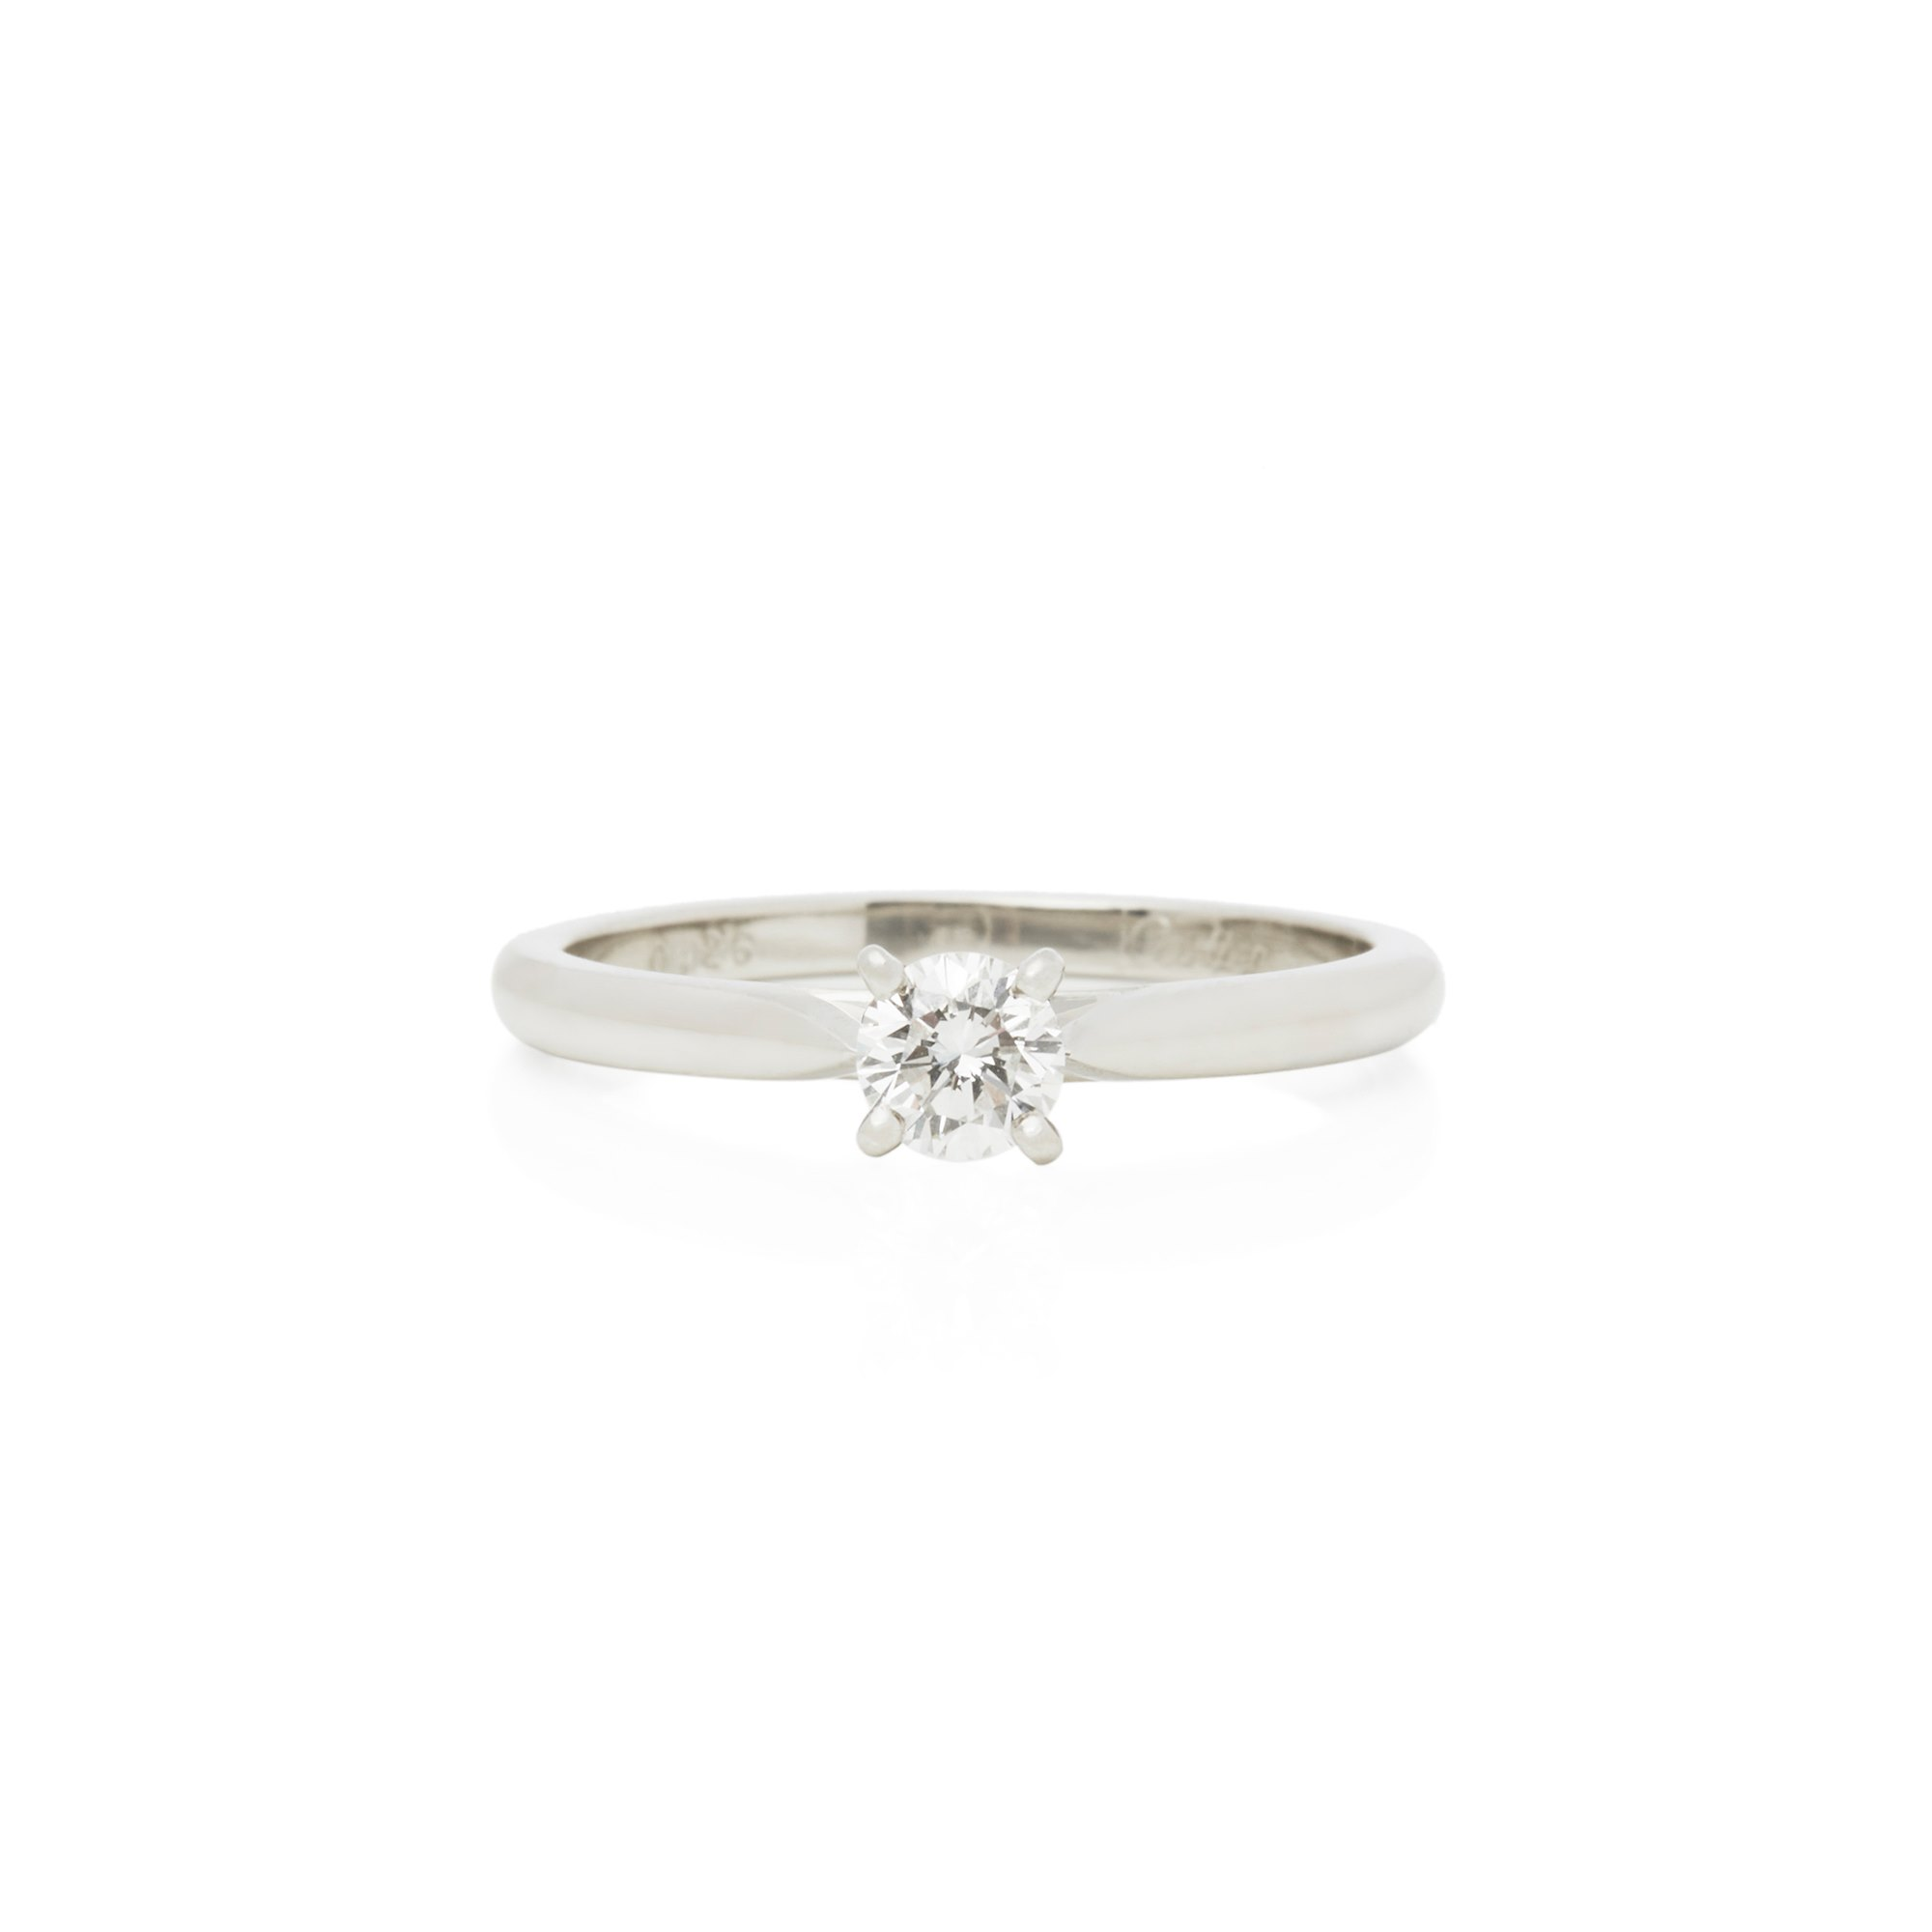 Cartier Platinum 0.26ct Round Brilliant Cut Solitaire Diamond Engagement Ring